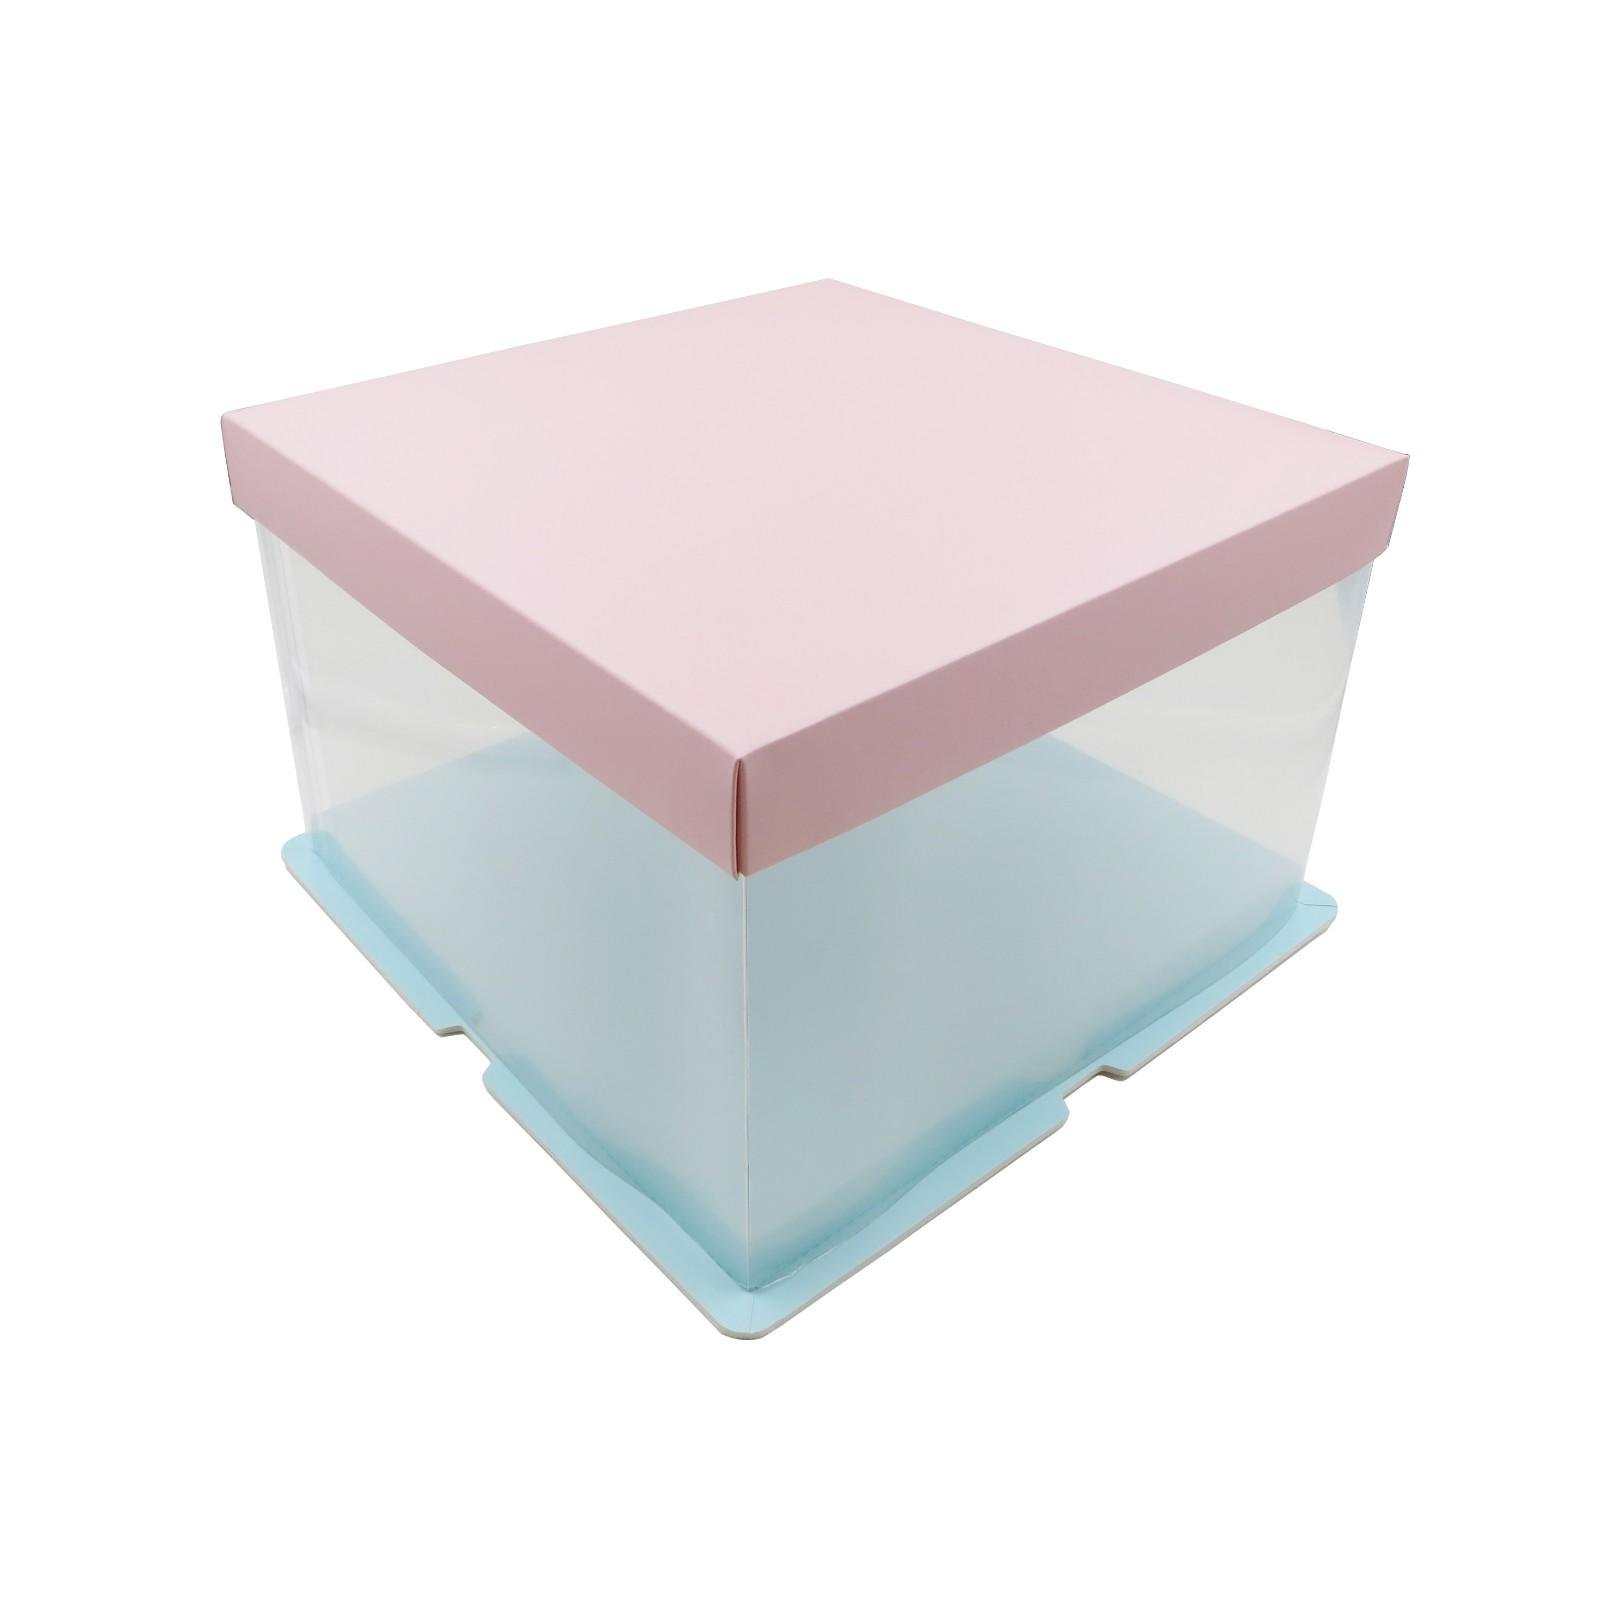 Yijianxing Plastic Products good-package plastic packaging manufacturer packaging for gifts-3